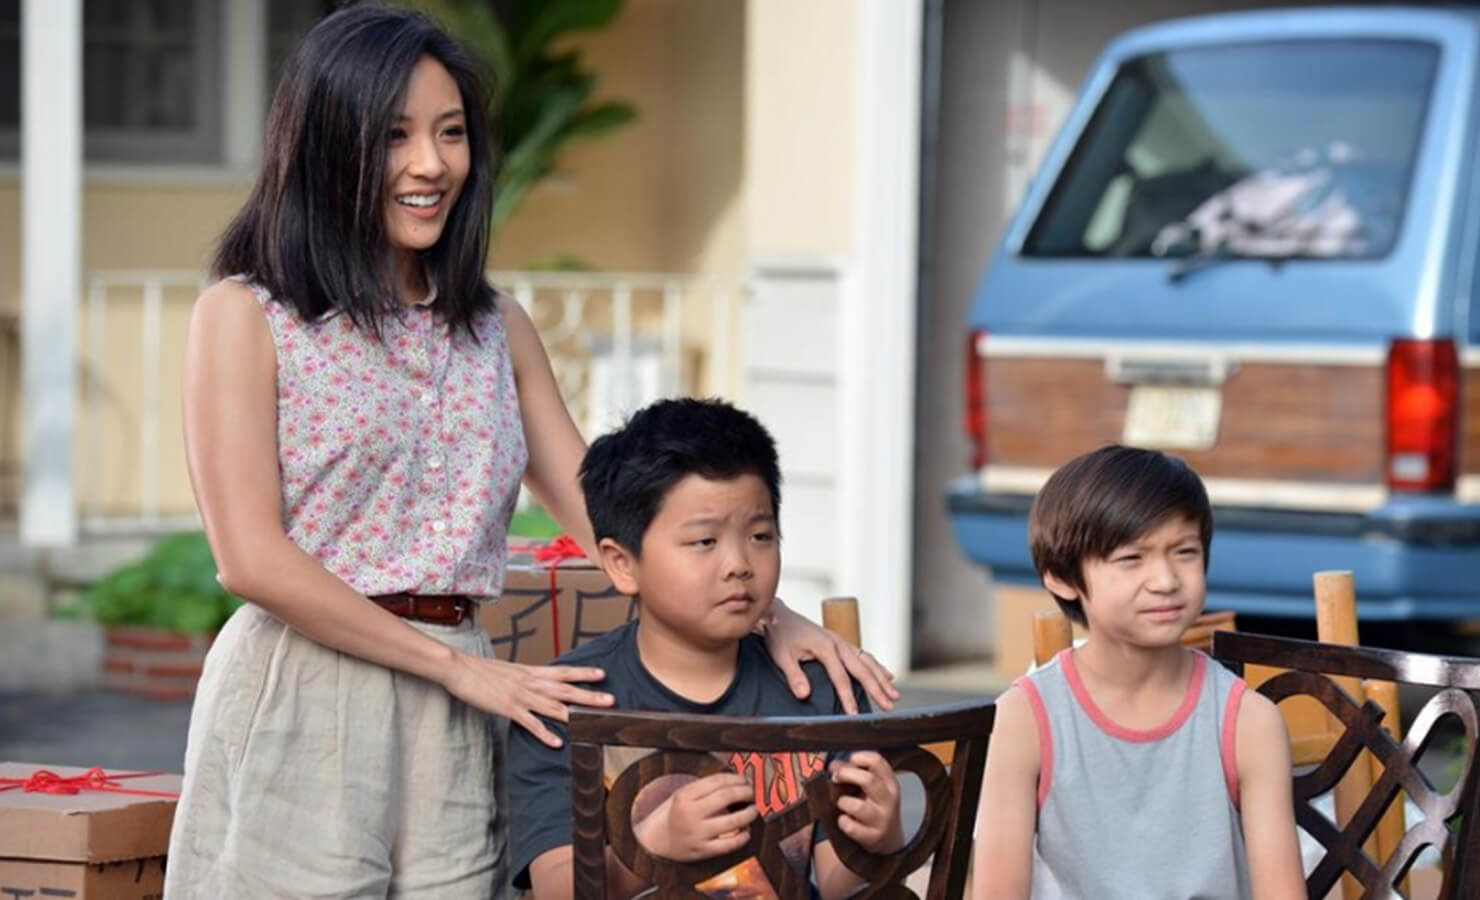 00-5-most-iconic-on-screen-moms-jessica-huang-fresh-off-the-boat-feature